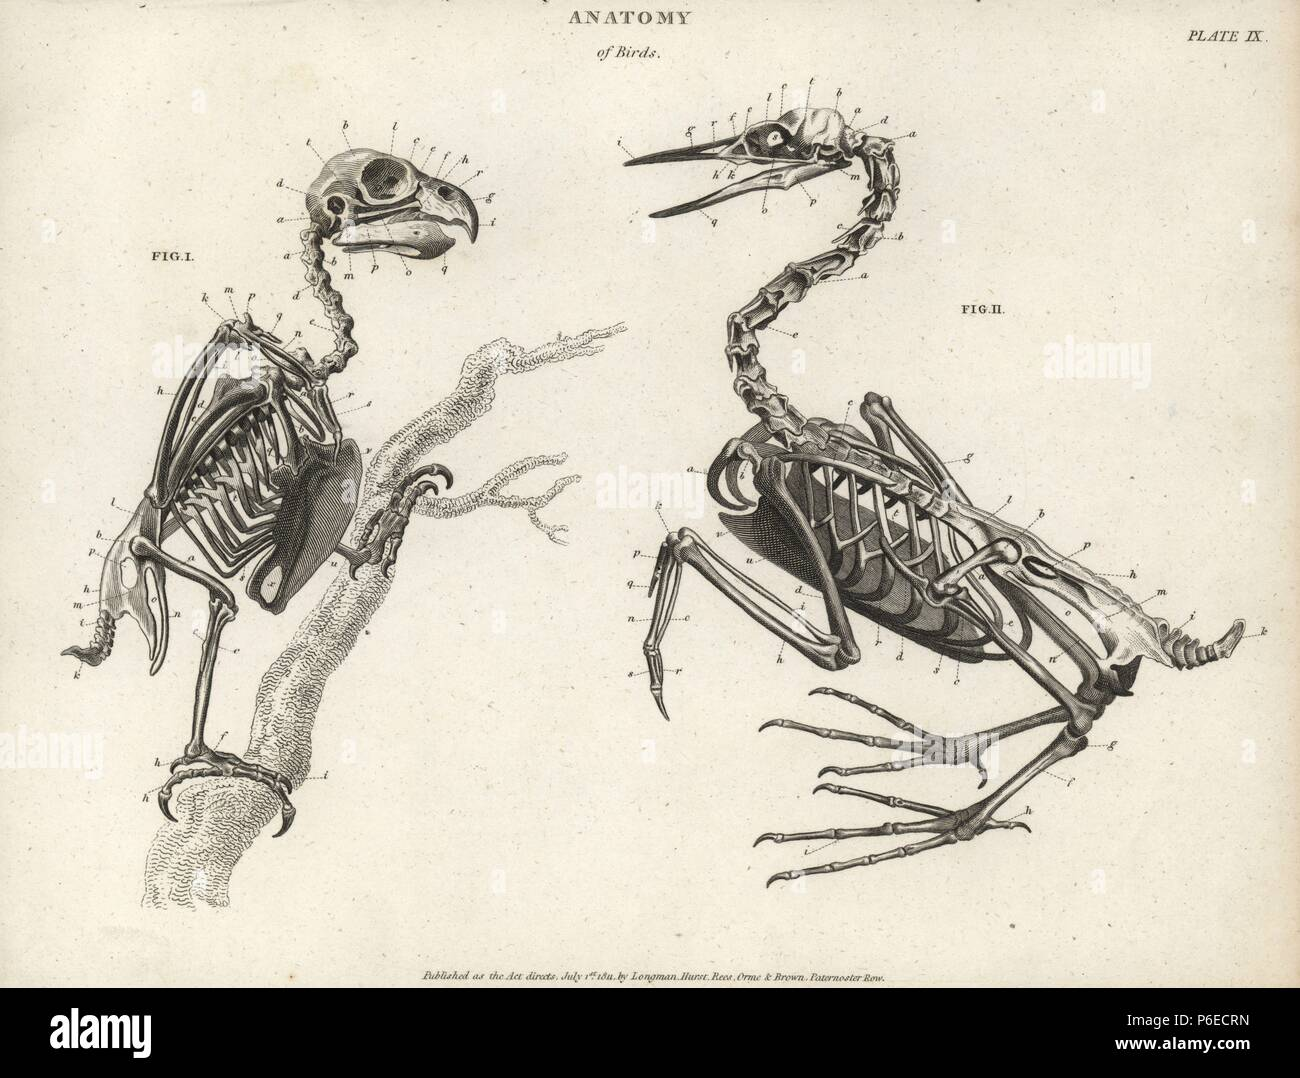 Anatomy of birds: skeleton. Copperplate engraving by Milton from ...